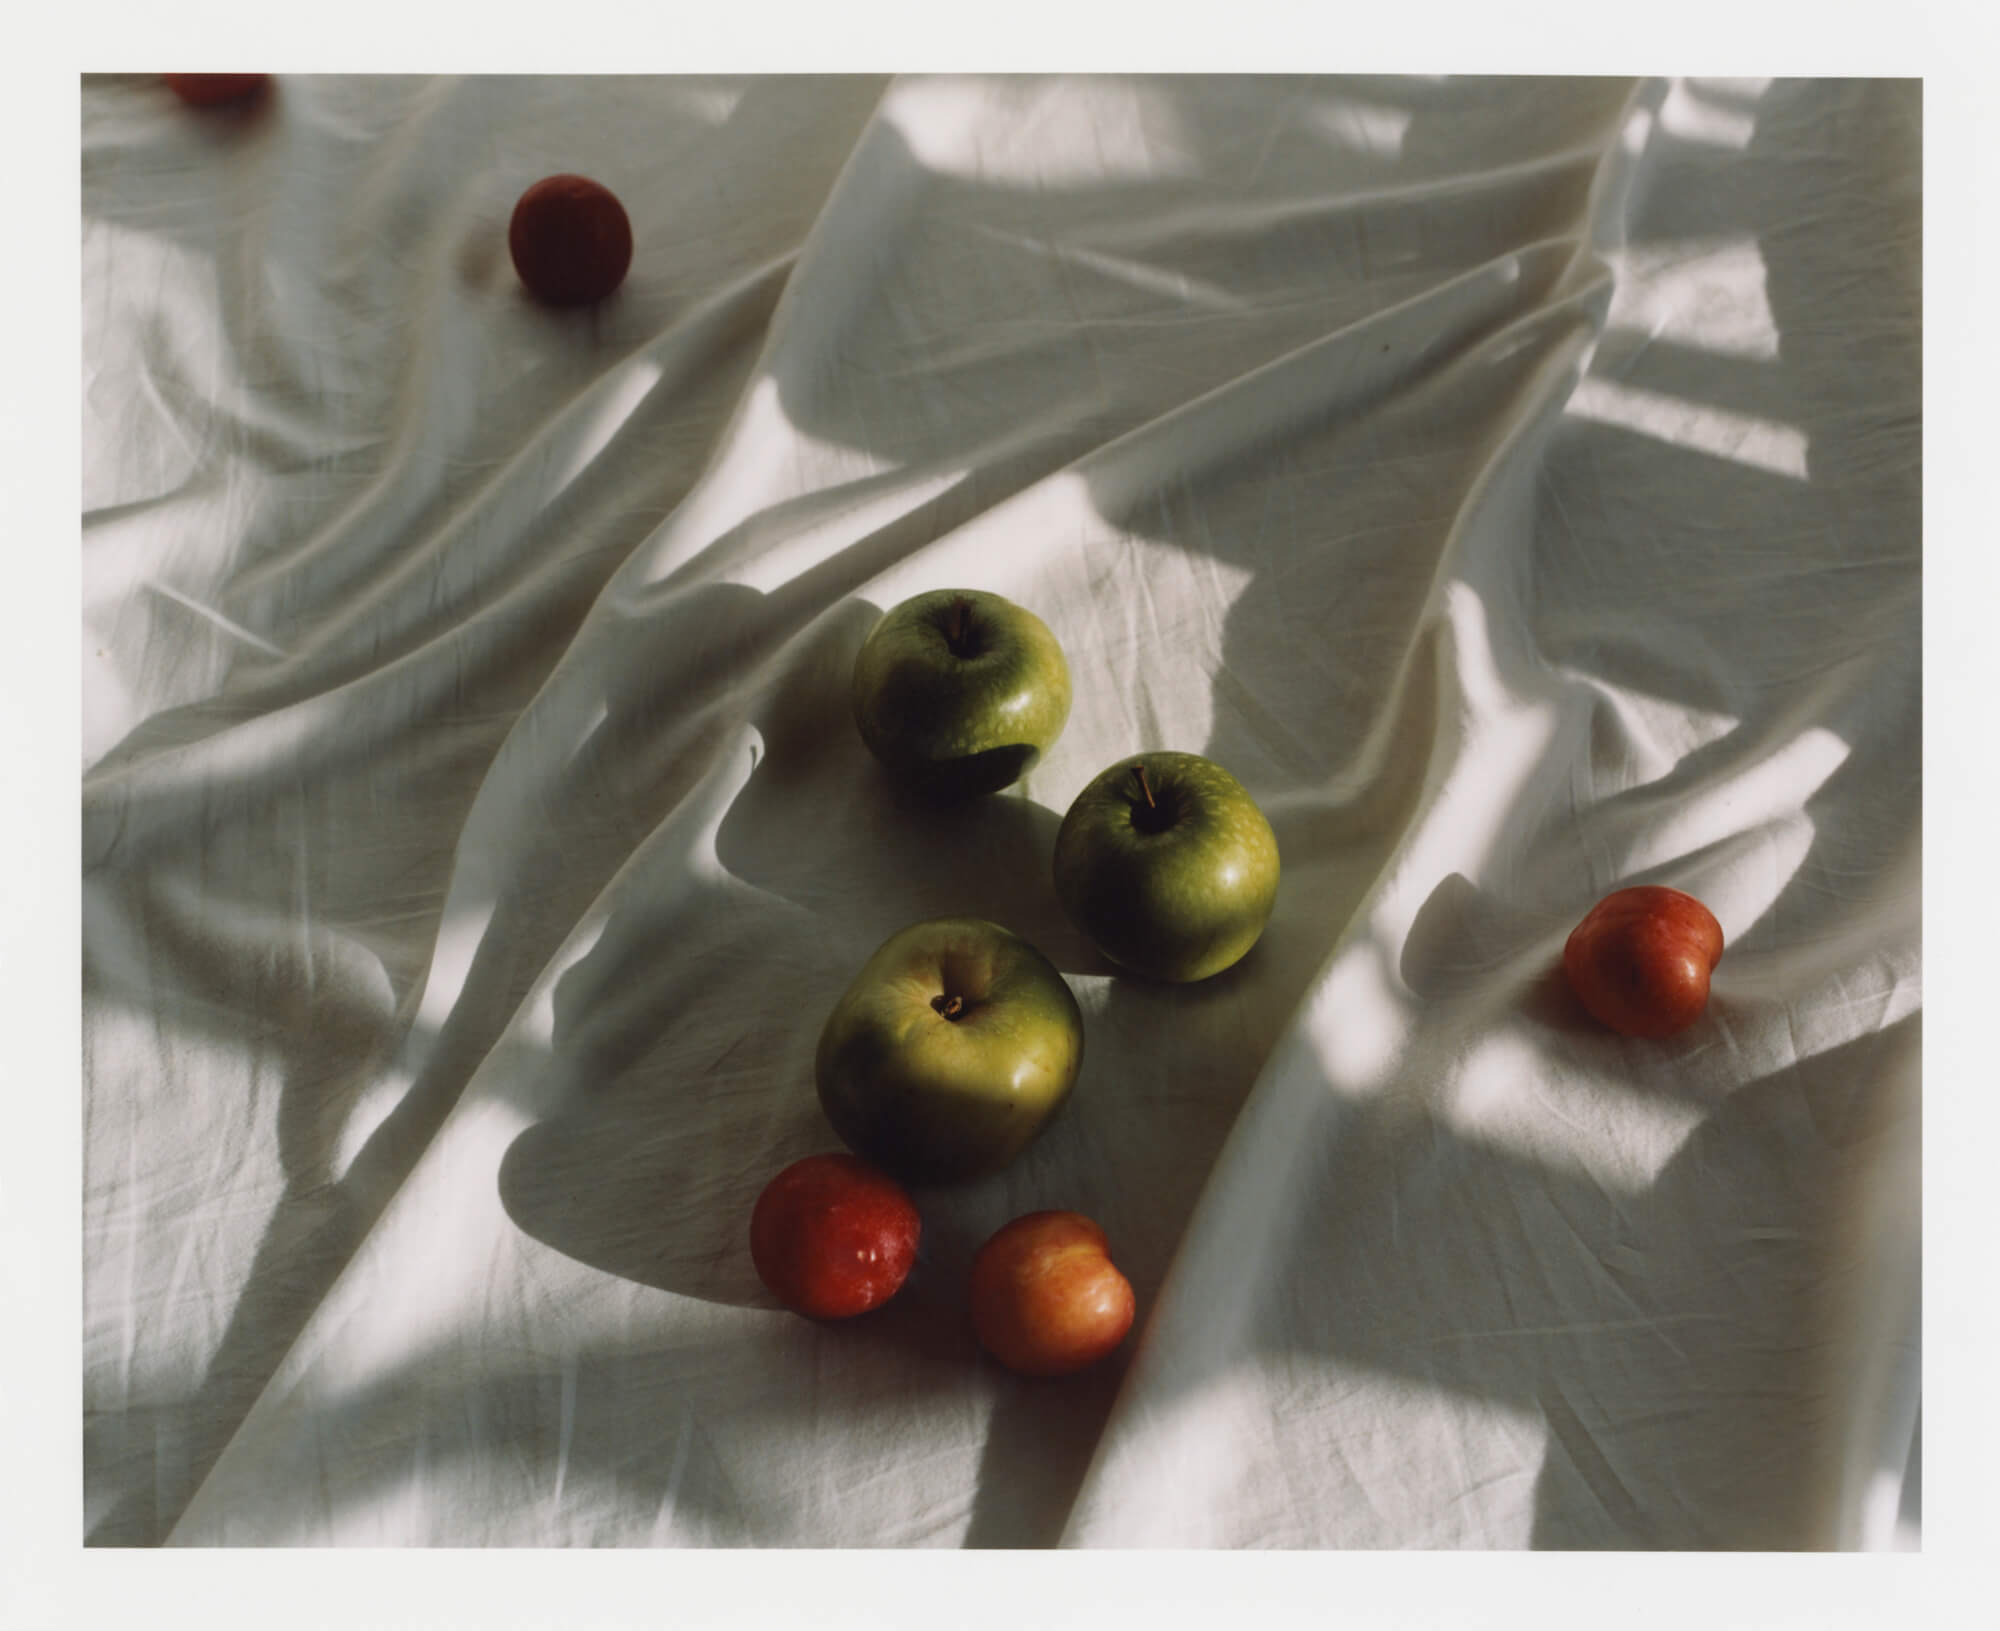 Phoebe Somerfield - Grapefruit Boulevard the south west collective of photography green apples and red apples on white bed sheet